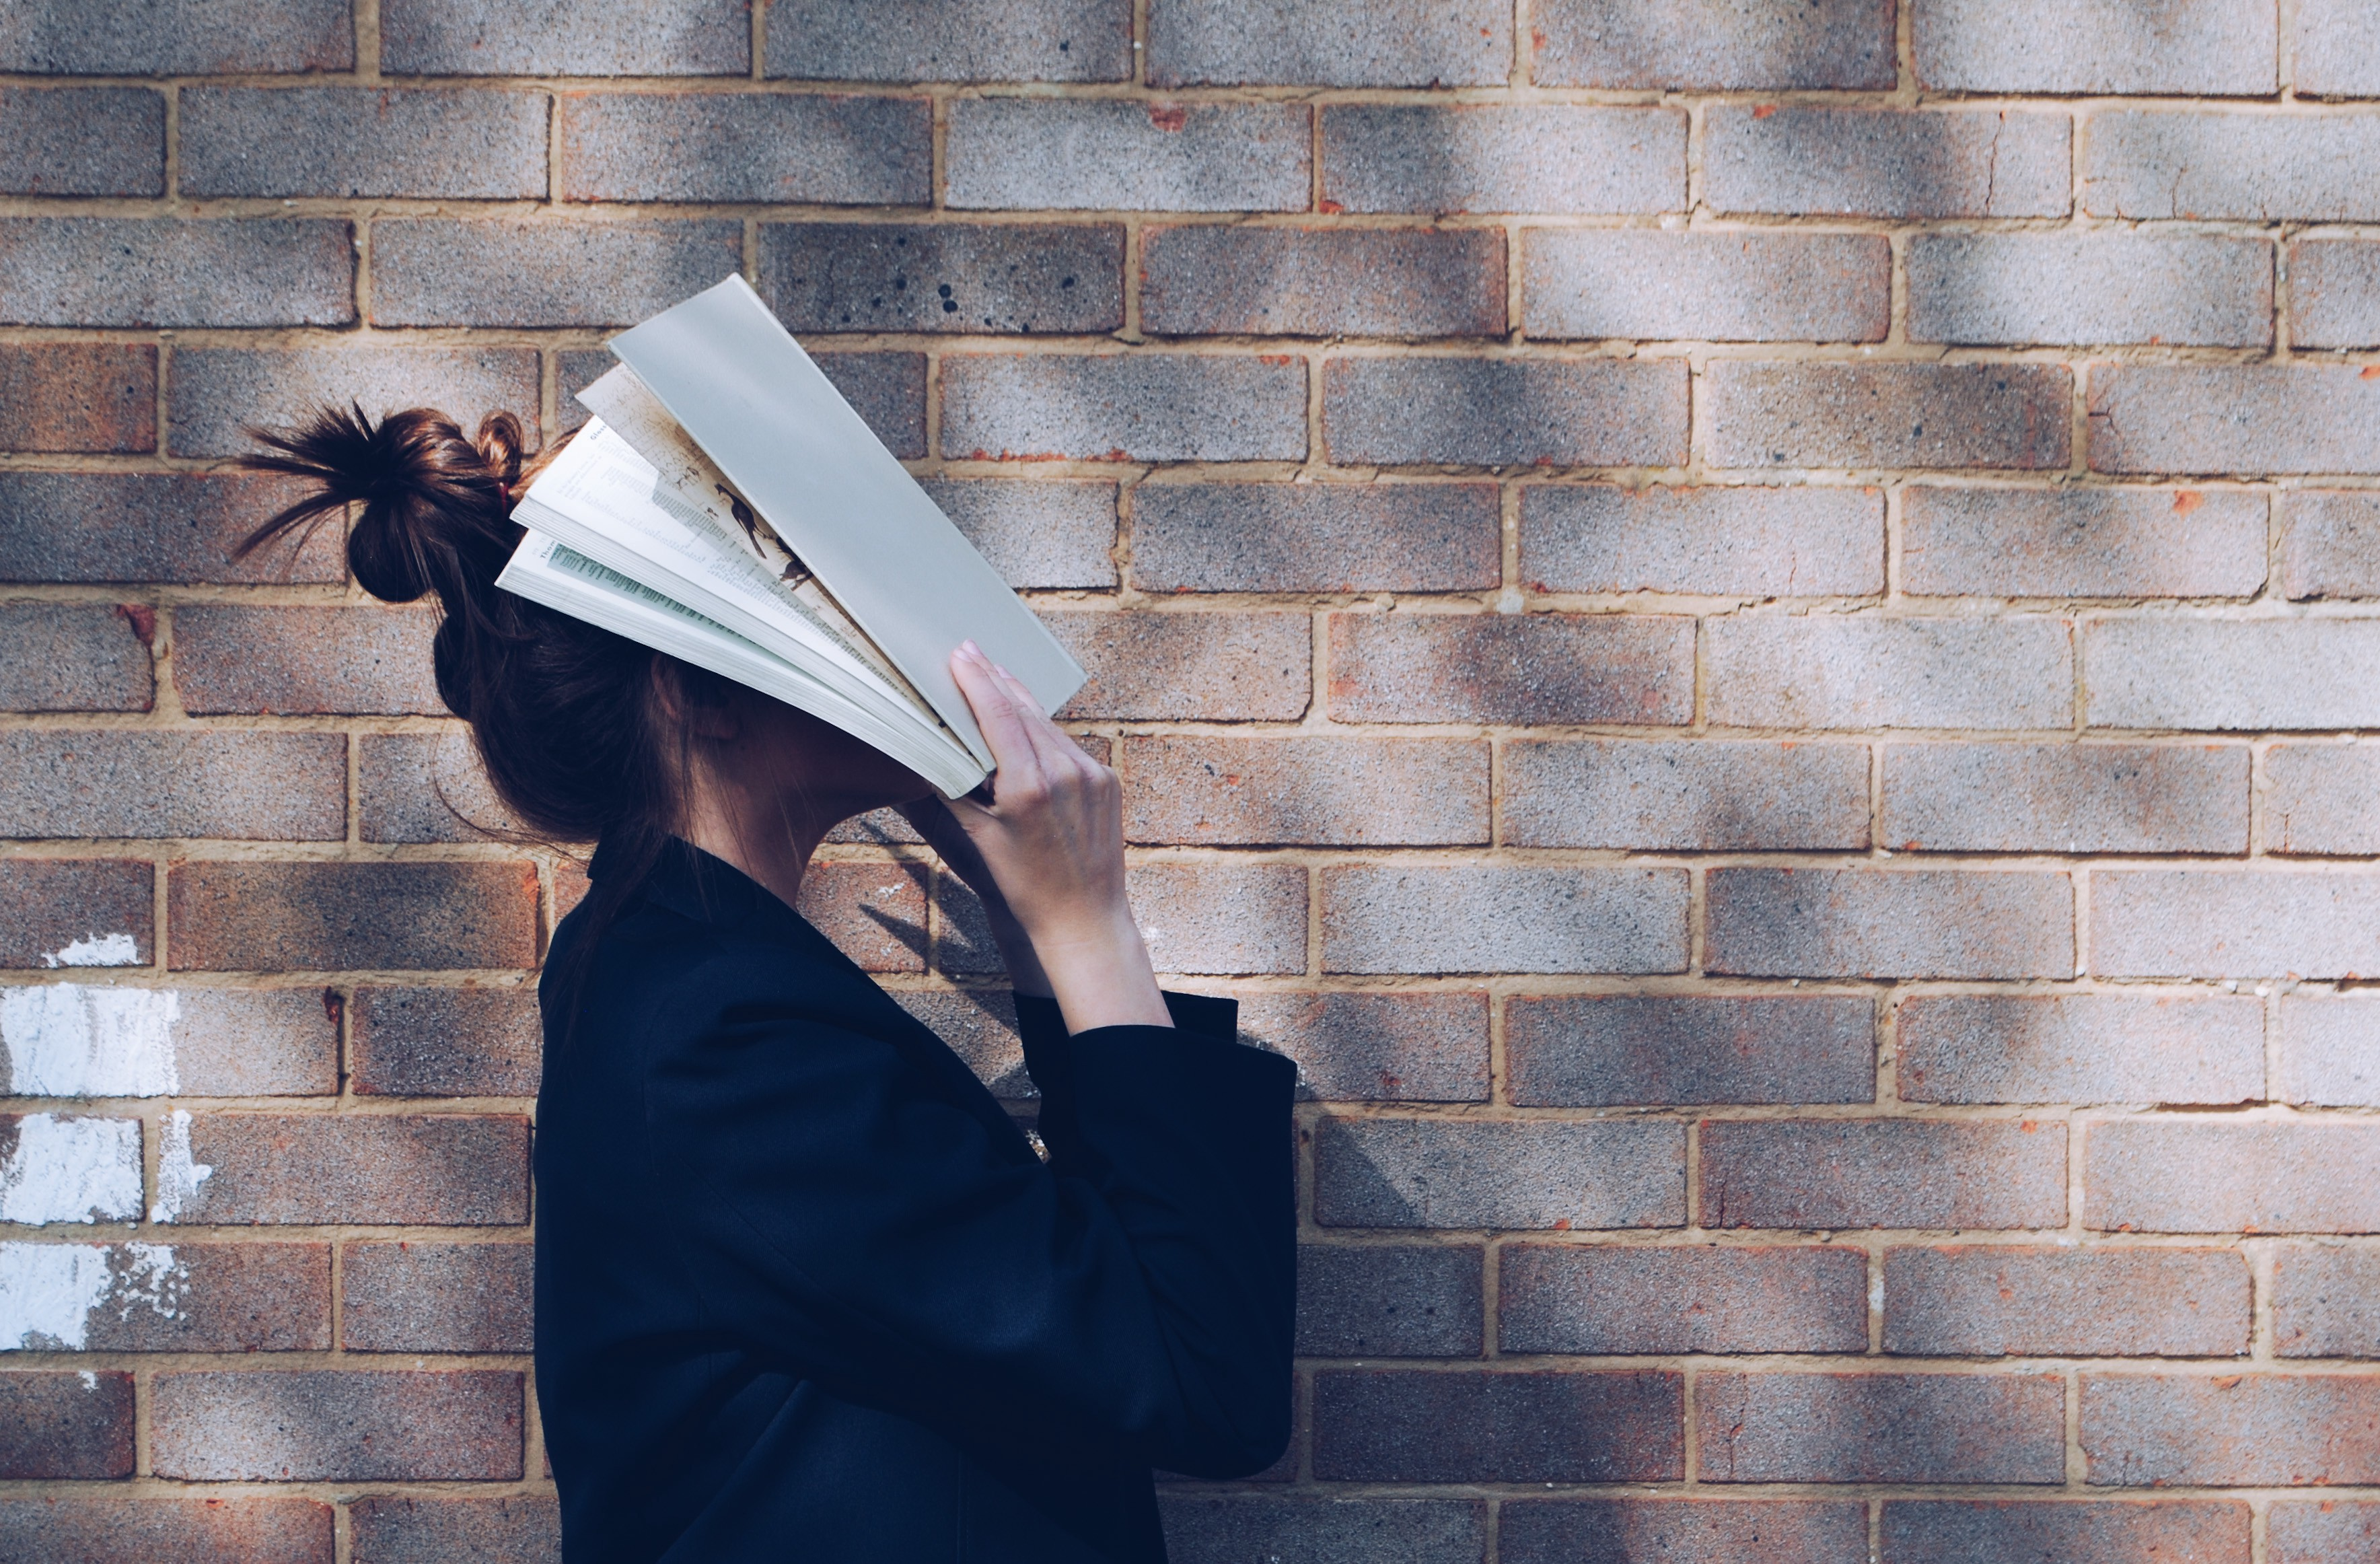 Not an actual photo of me studying, but a picture of a girl with her head in a book.